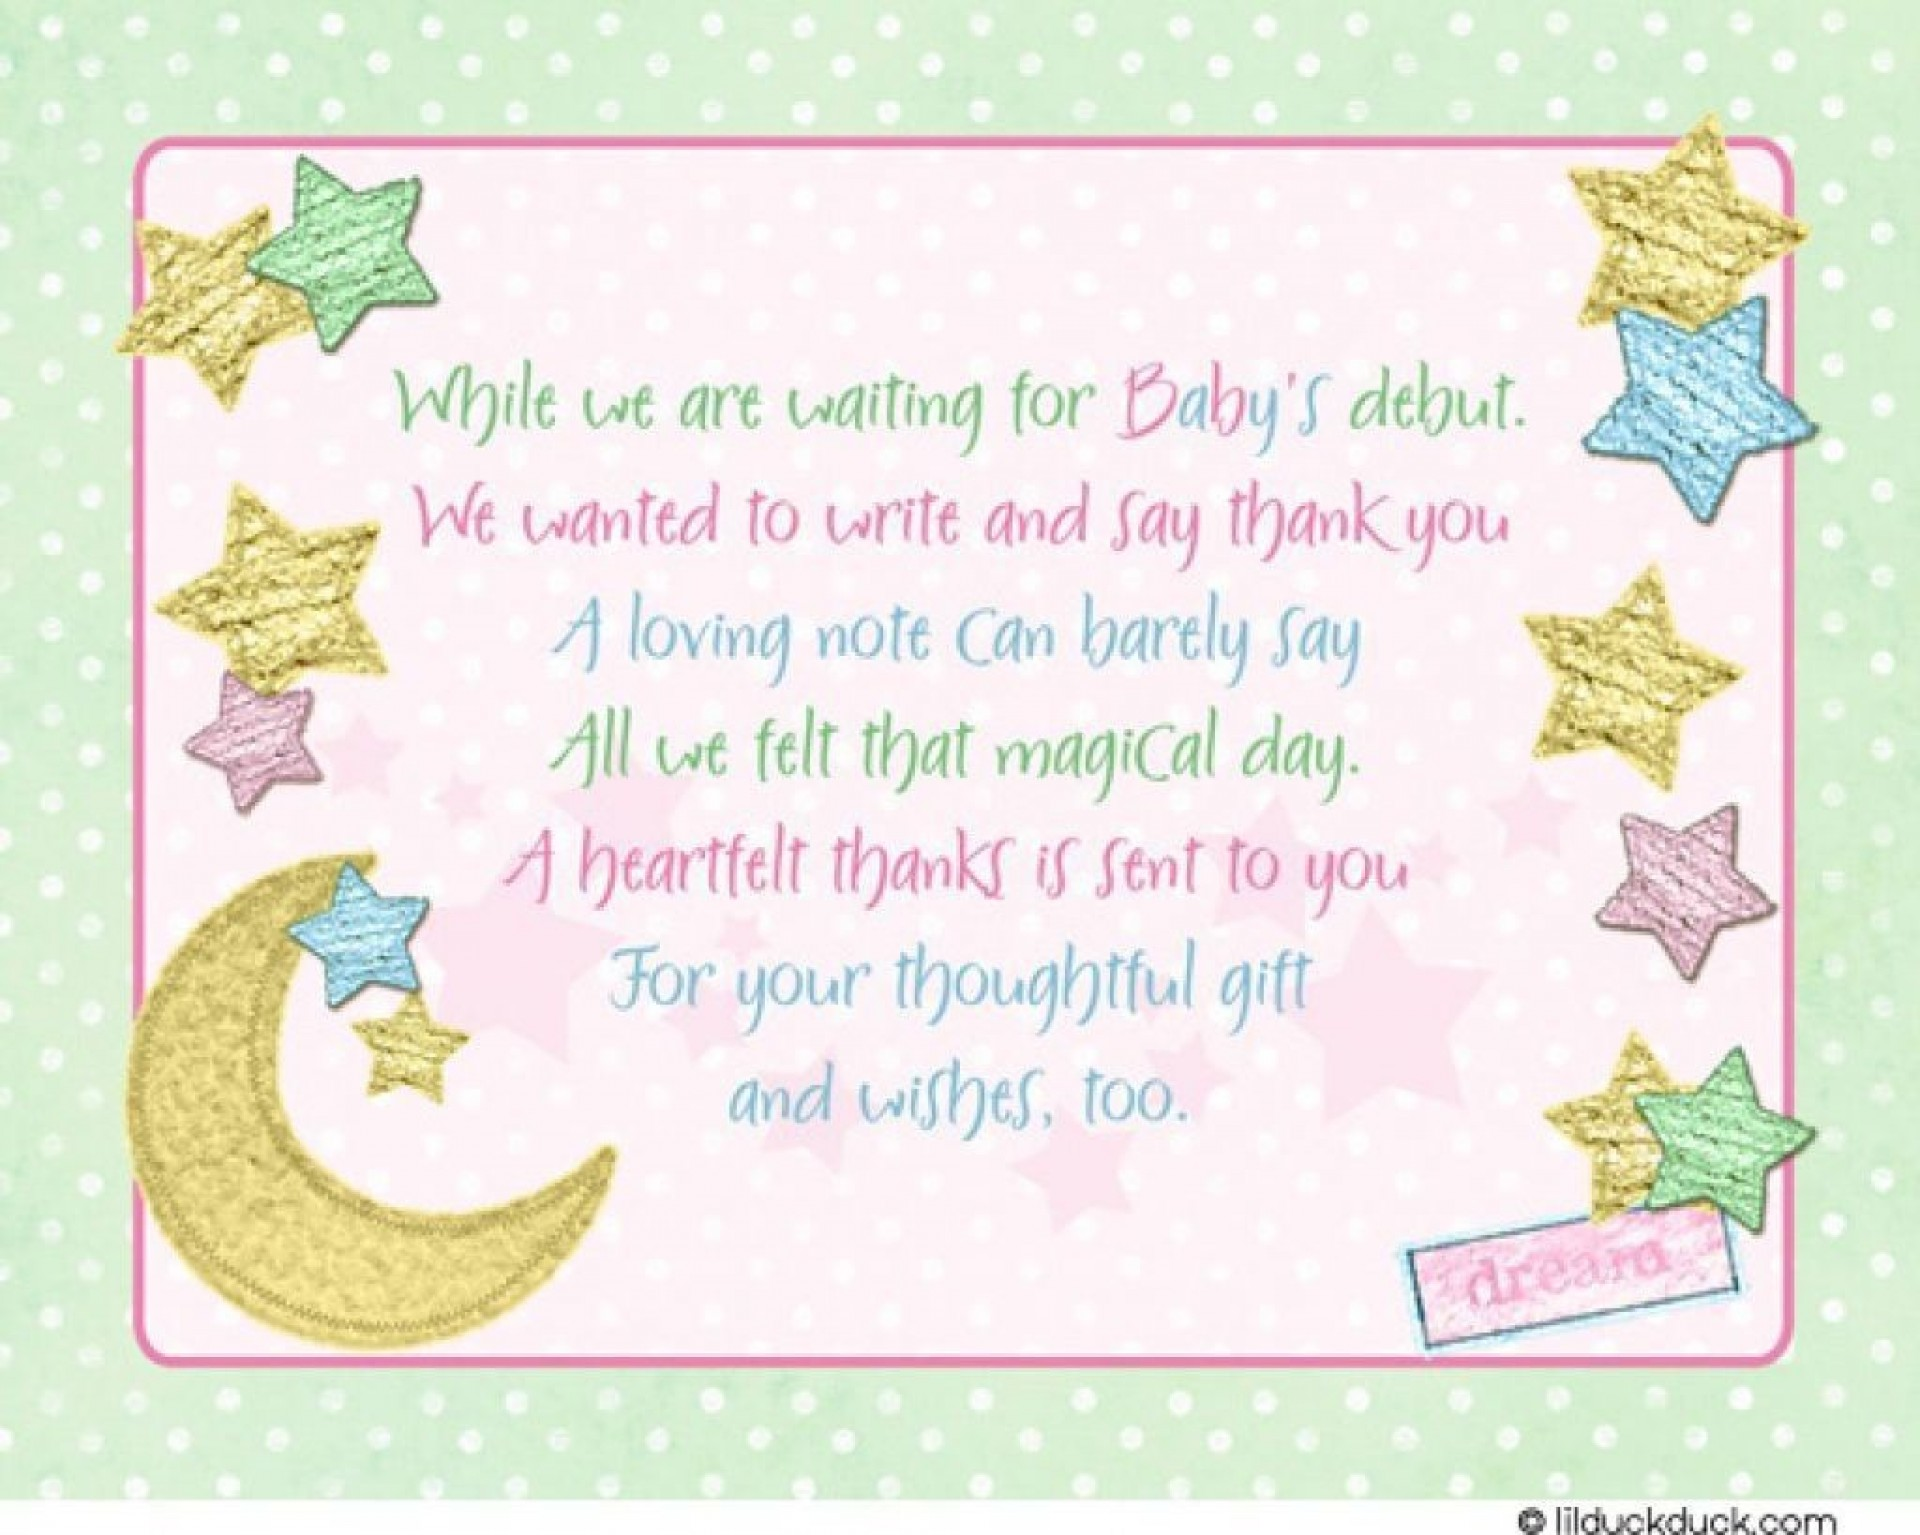 006 Fantastic Thank You Card Wording Baby Shower Gift High Definition  For Multiple Group1920